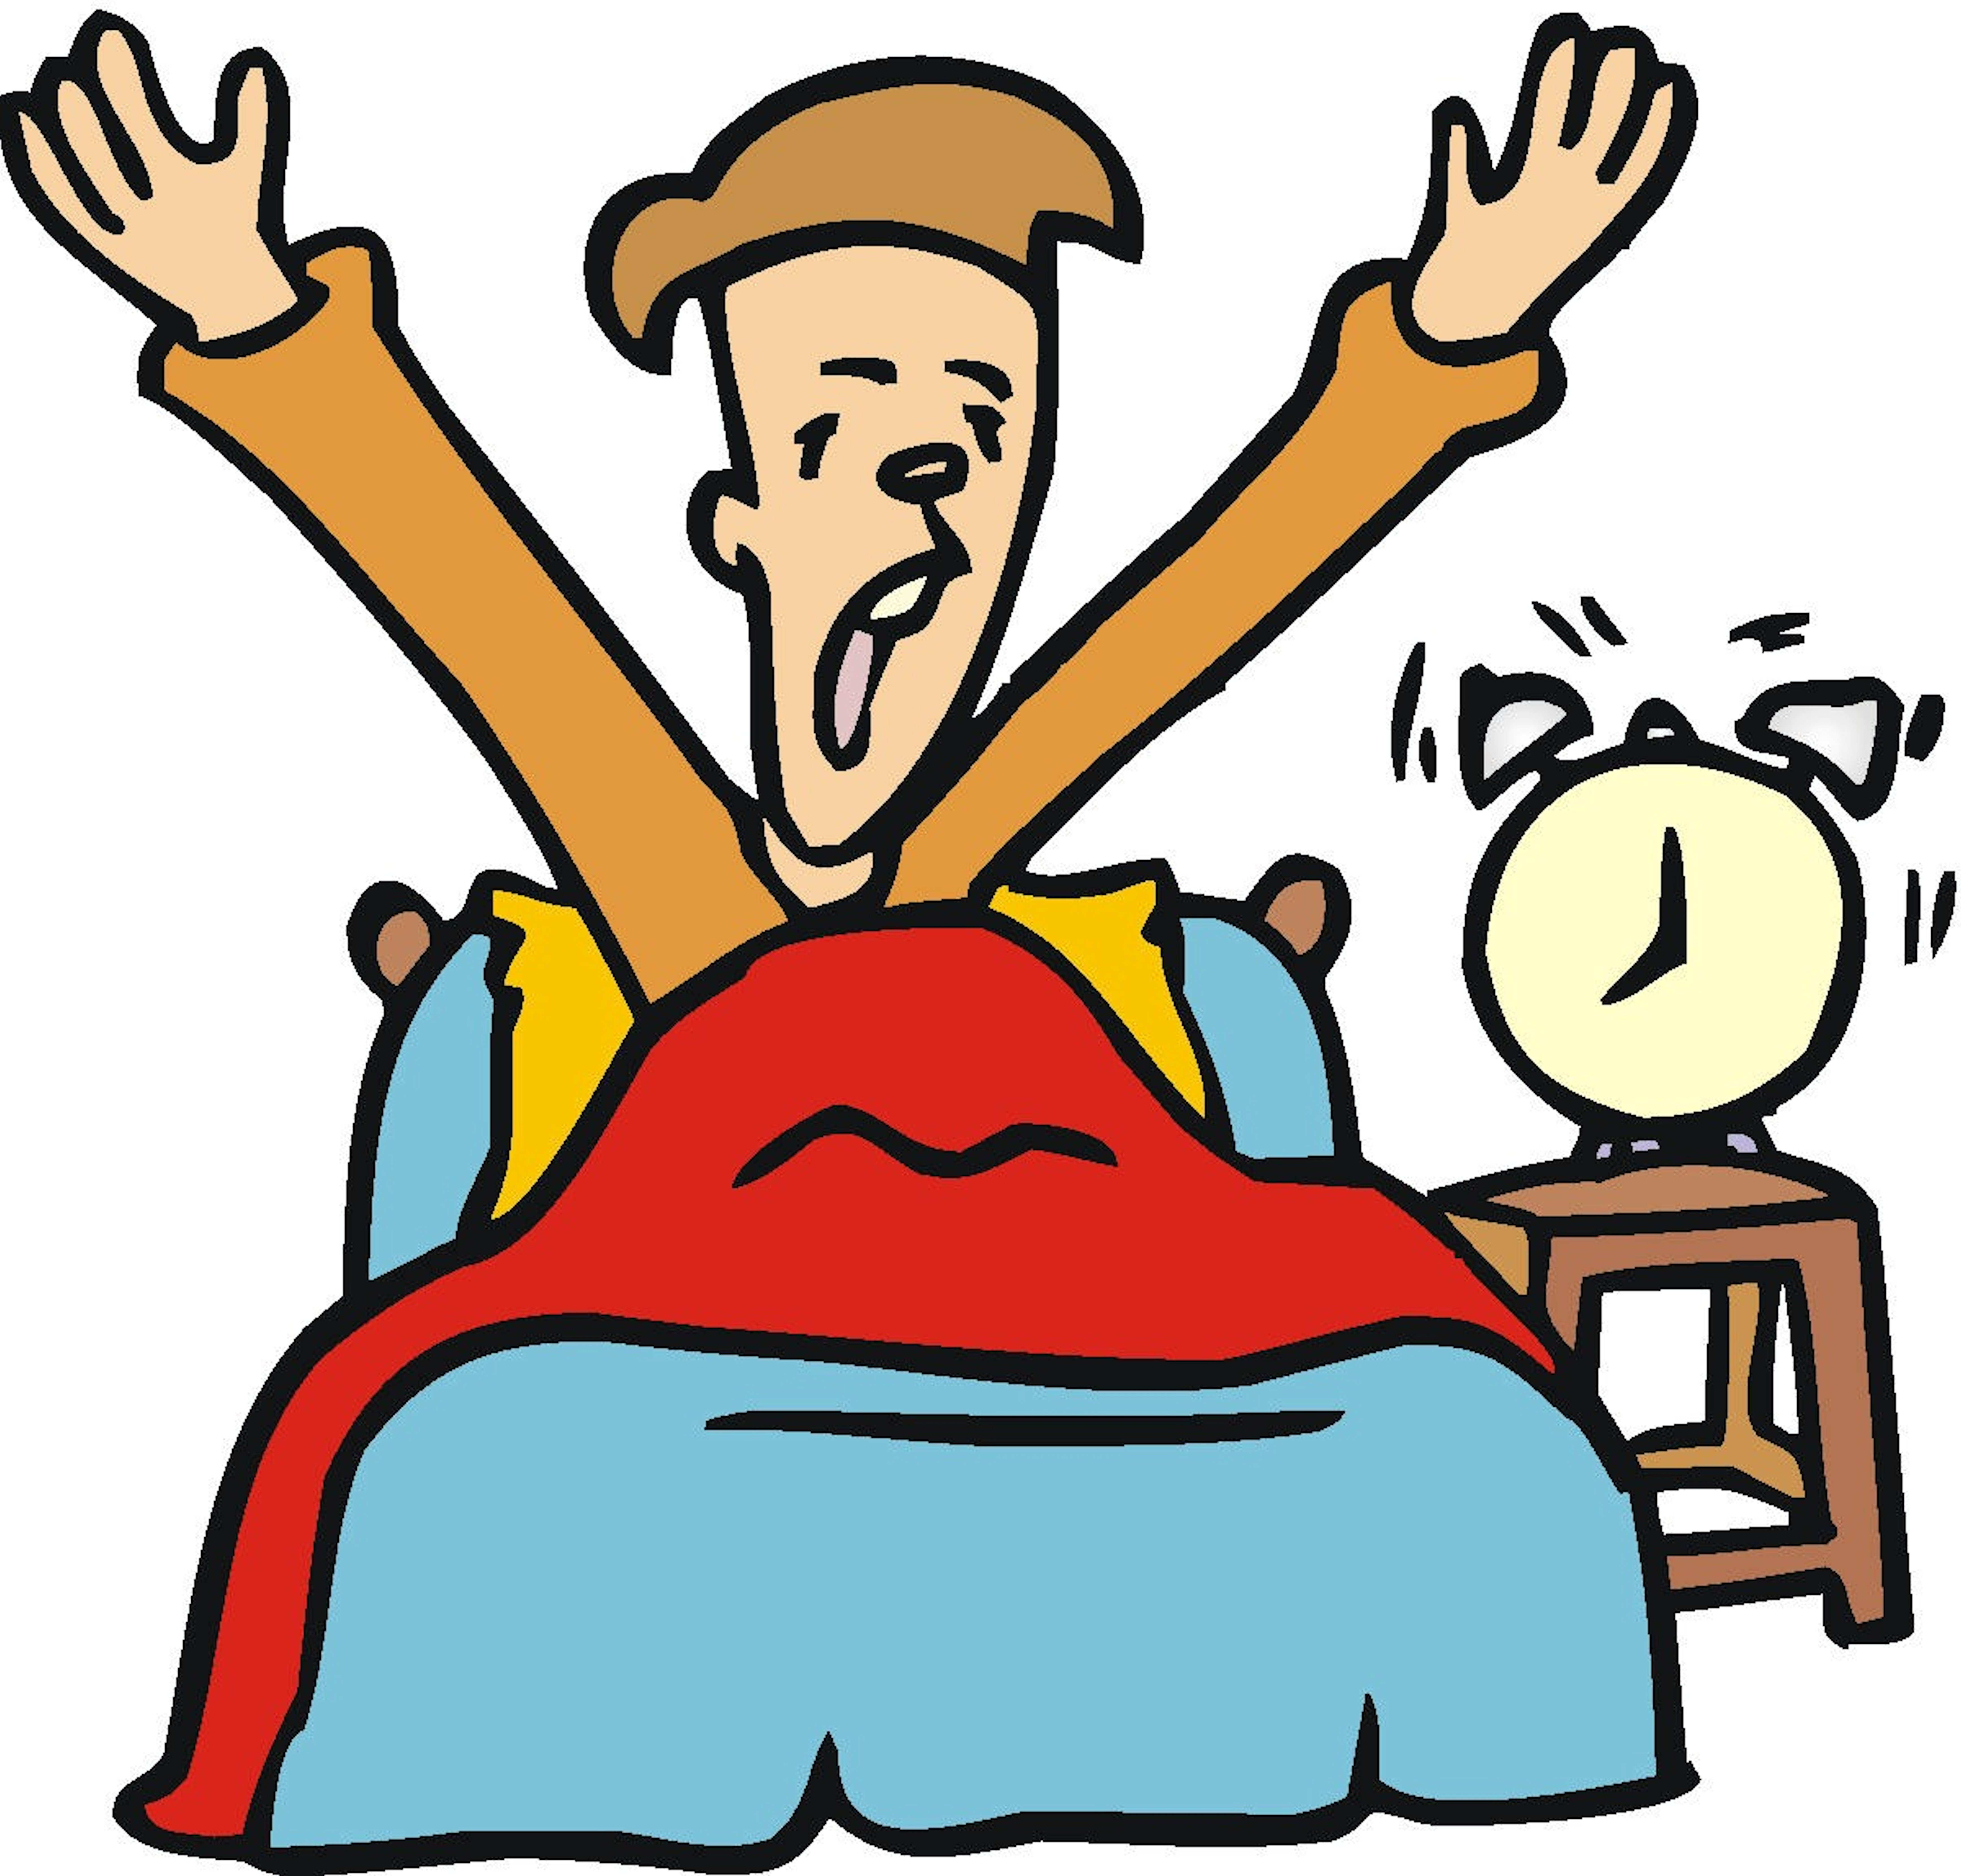 waking up early in the morning For some, early morning waking may even be a sign of spiritual awakening  if you need to get up for the bathroom, do so but try to stay as sleepy as possible.